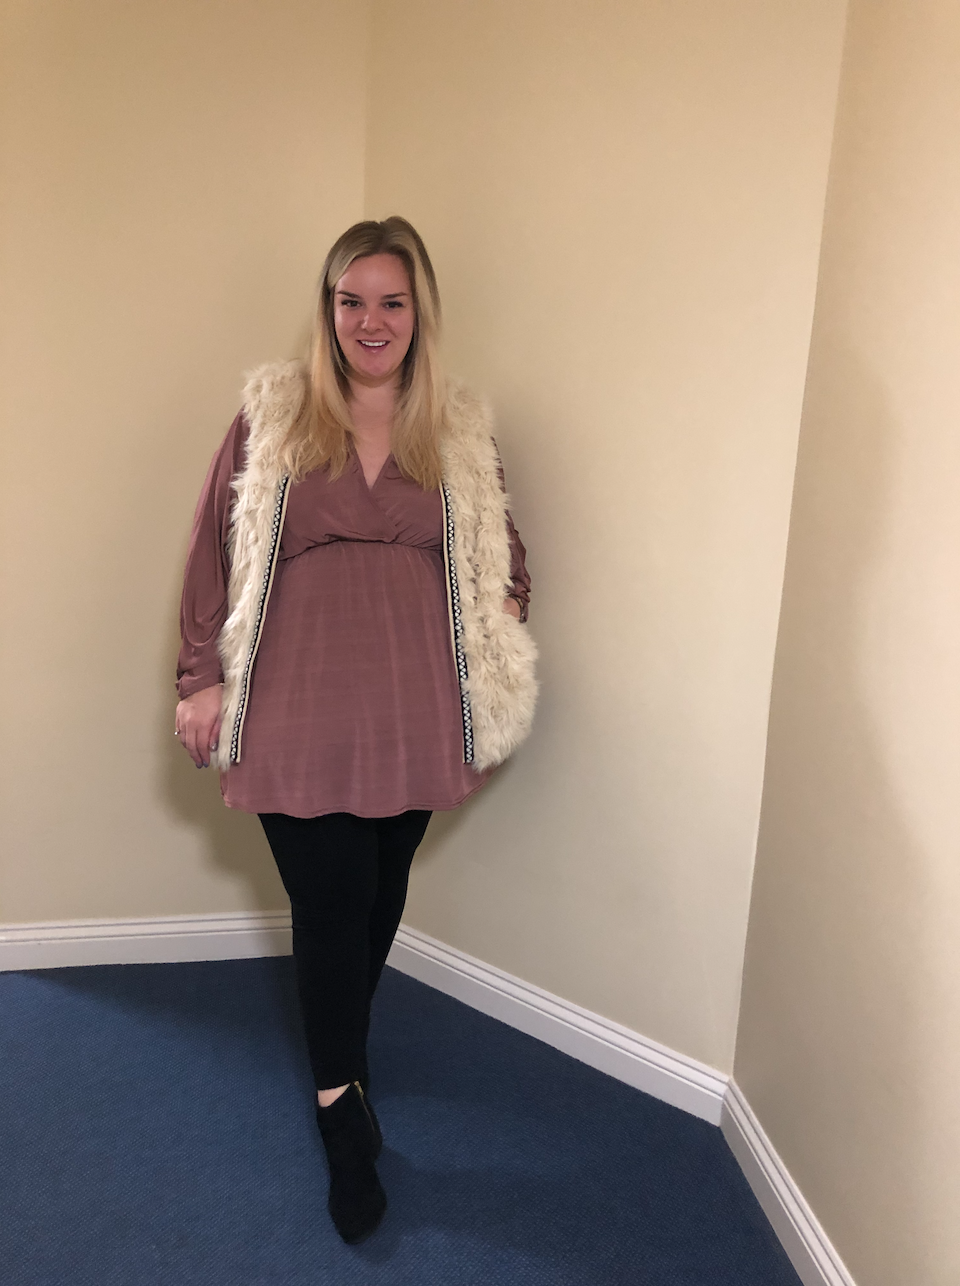 Plus Size Blogger WhatLauraLoves